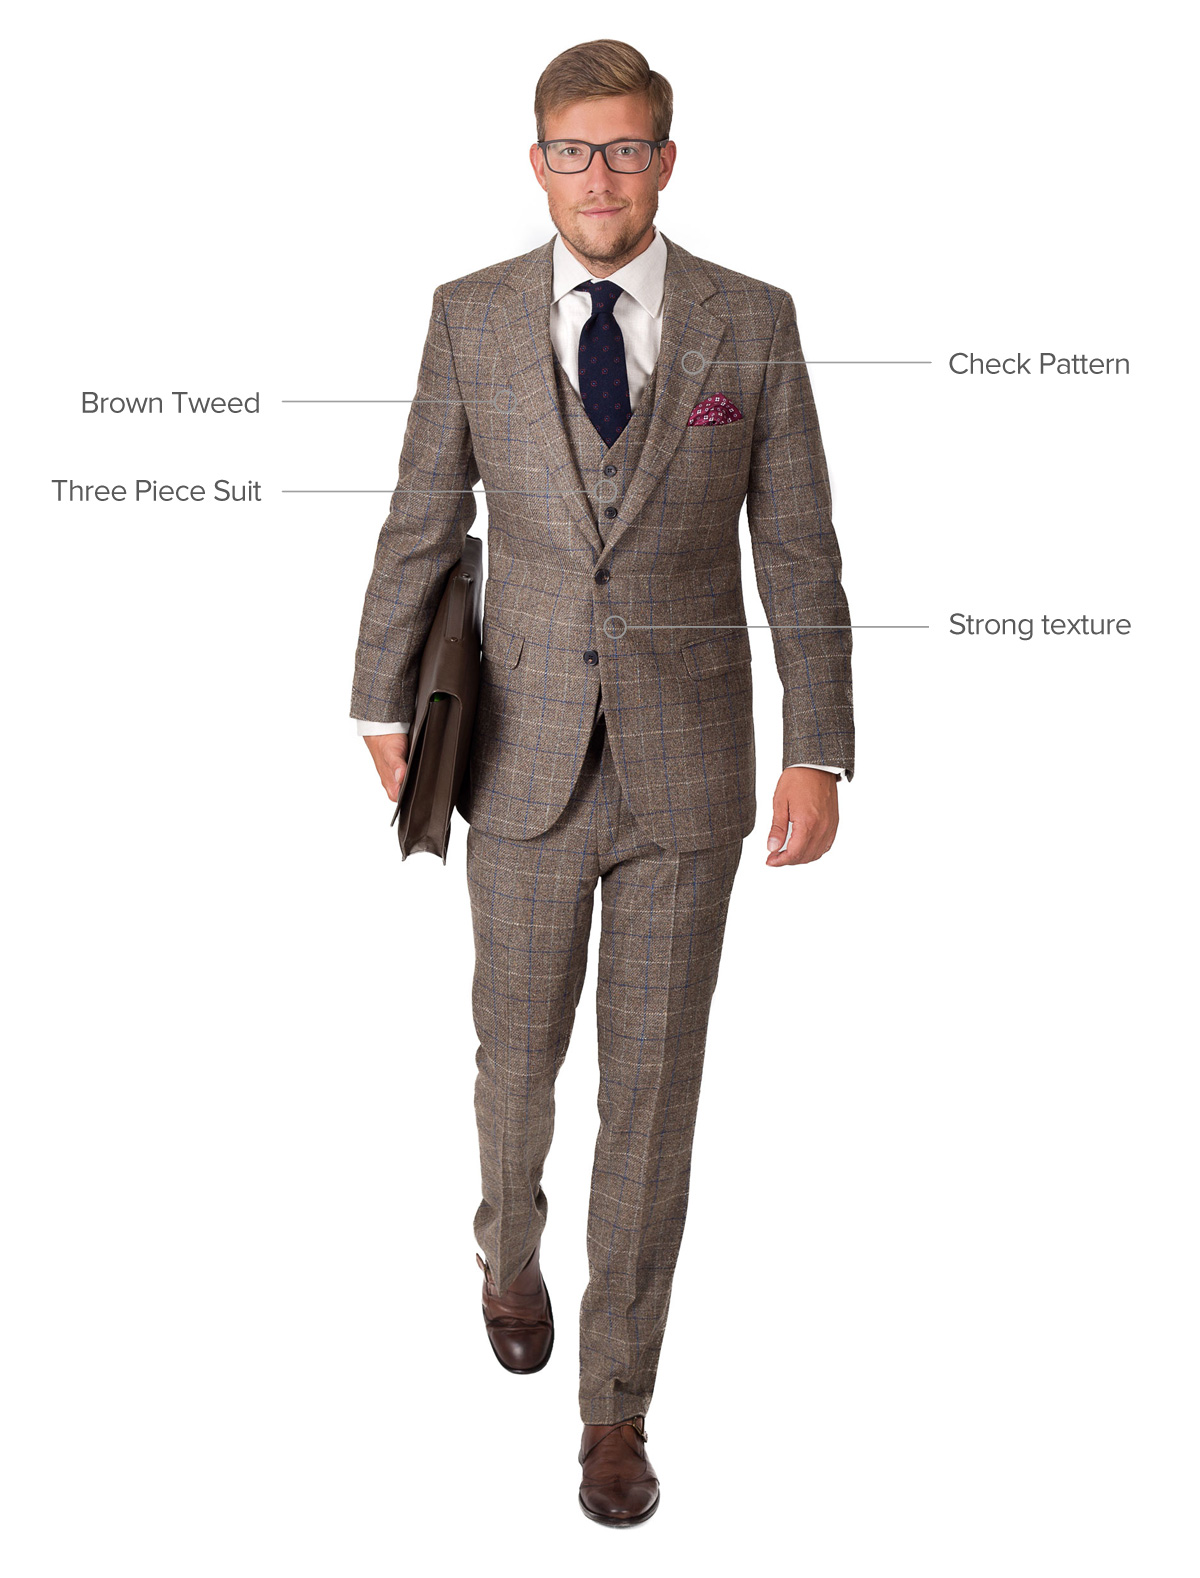 7 Rules of Autumn & Winter Style